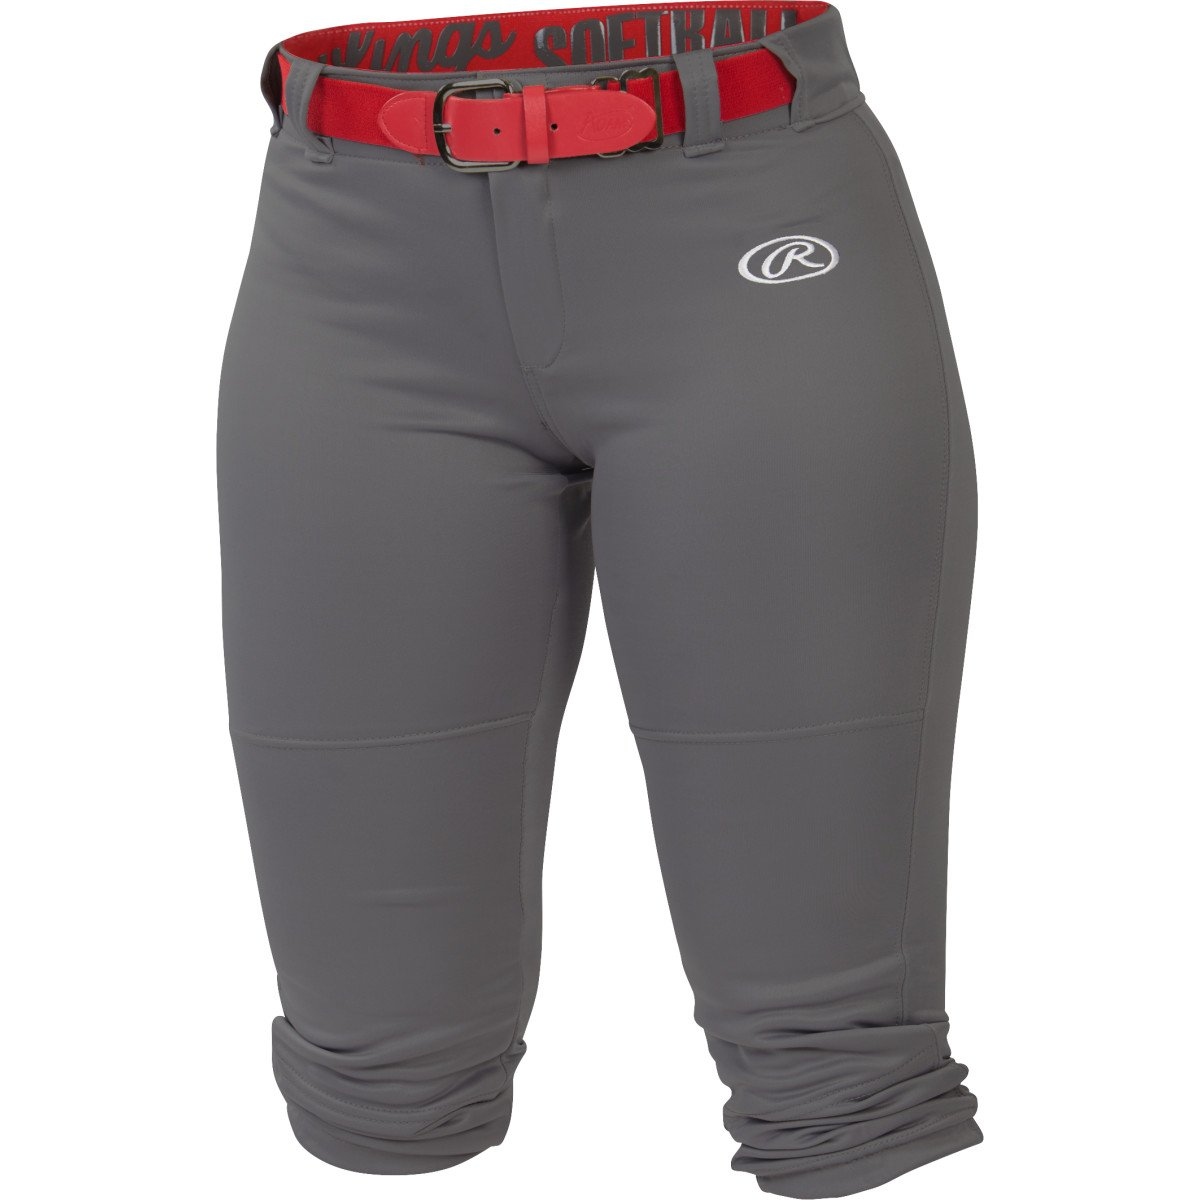 Rawlings Fastpitch Launch Pant - Girls WLNCHG